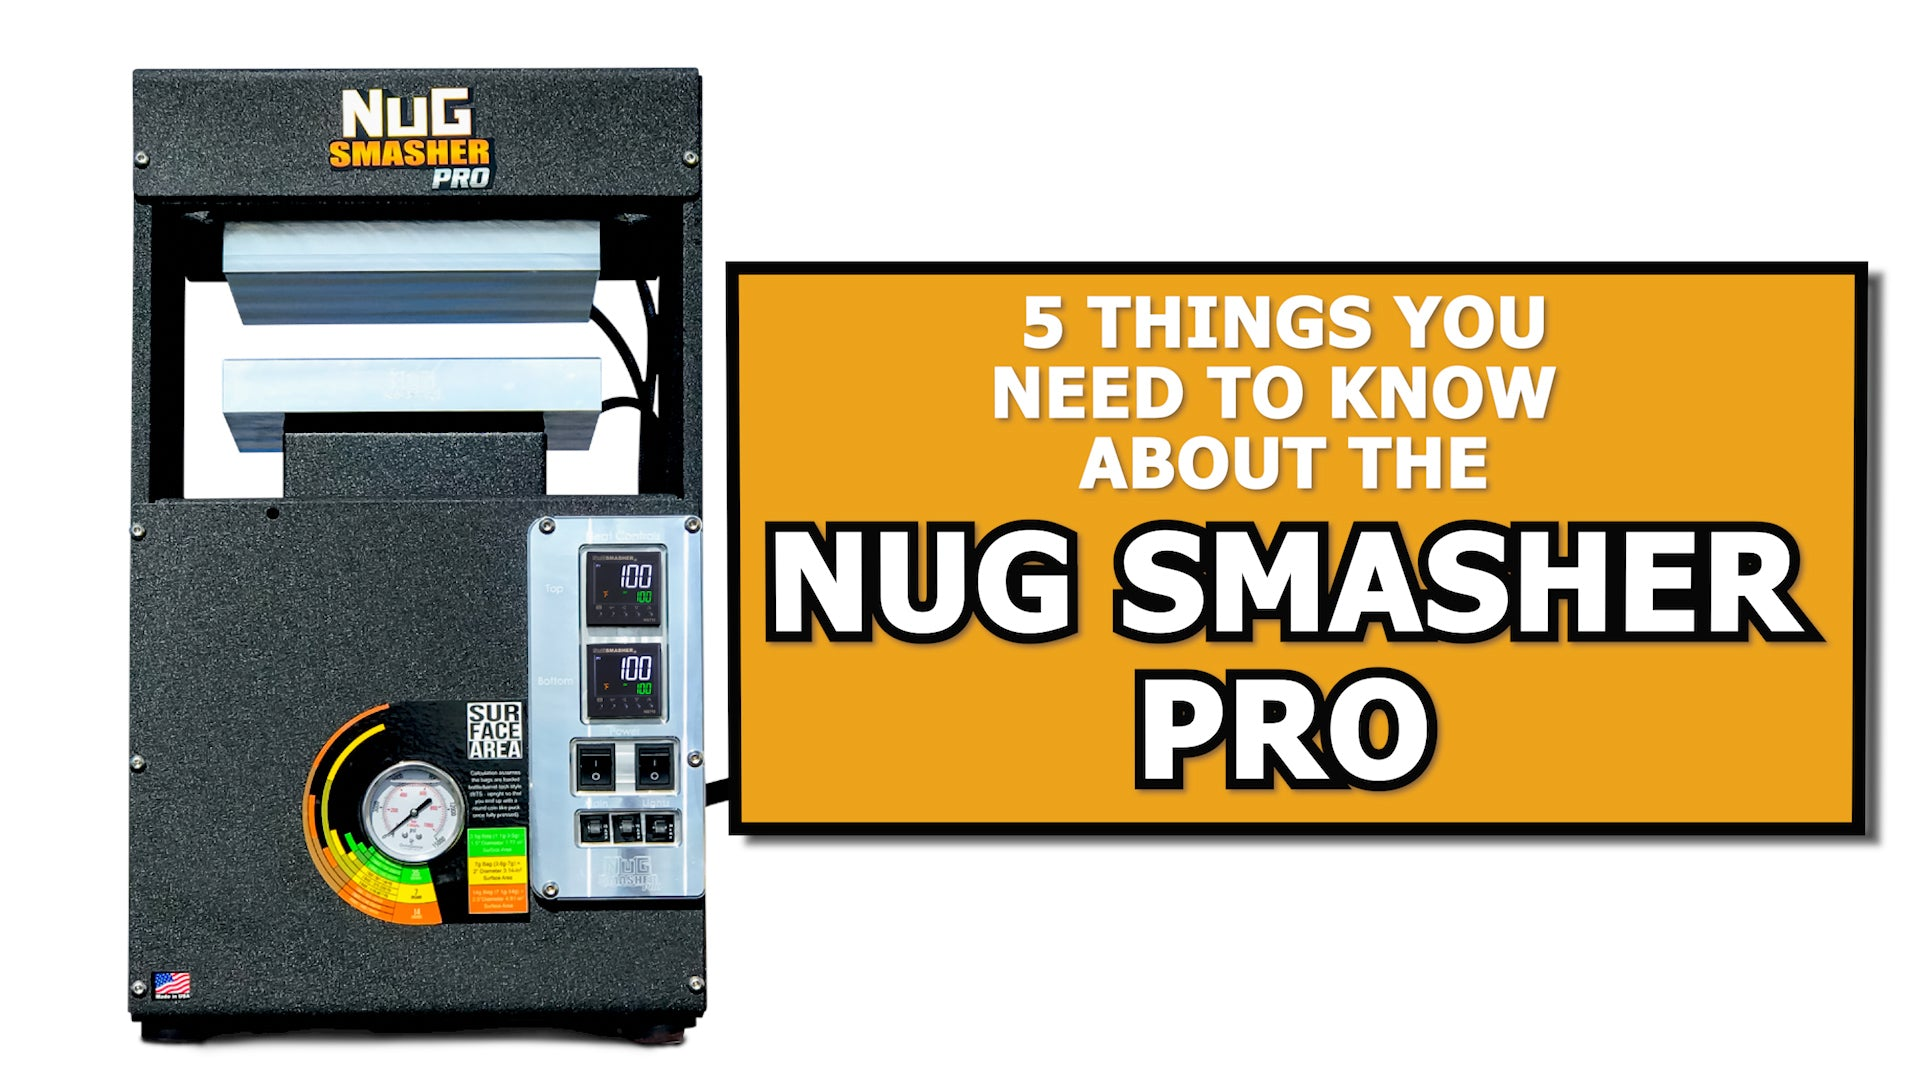 5 Things You Need to Know About the NugSmasher Pro 20 Ton Rosin Press